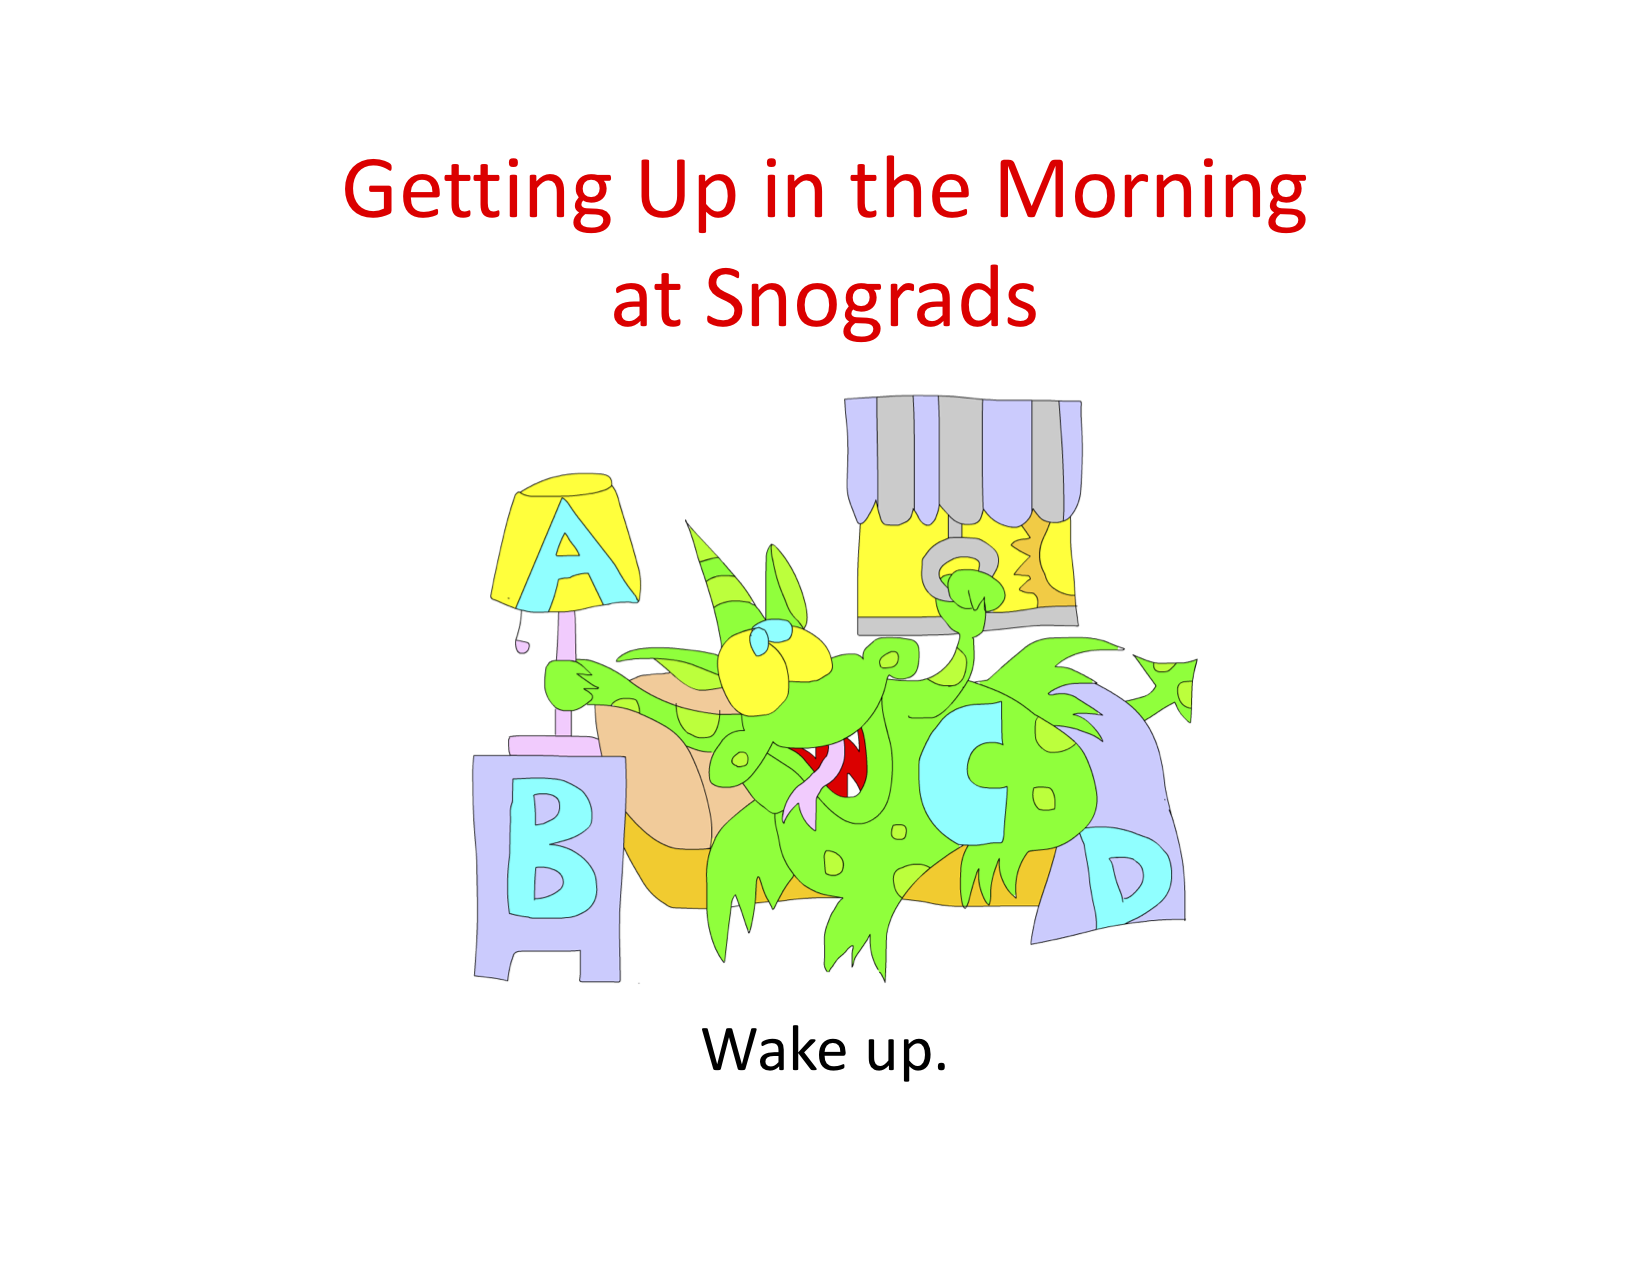 Mornings at SnogradsUSE (dragged)